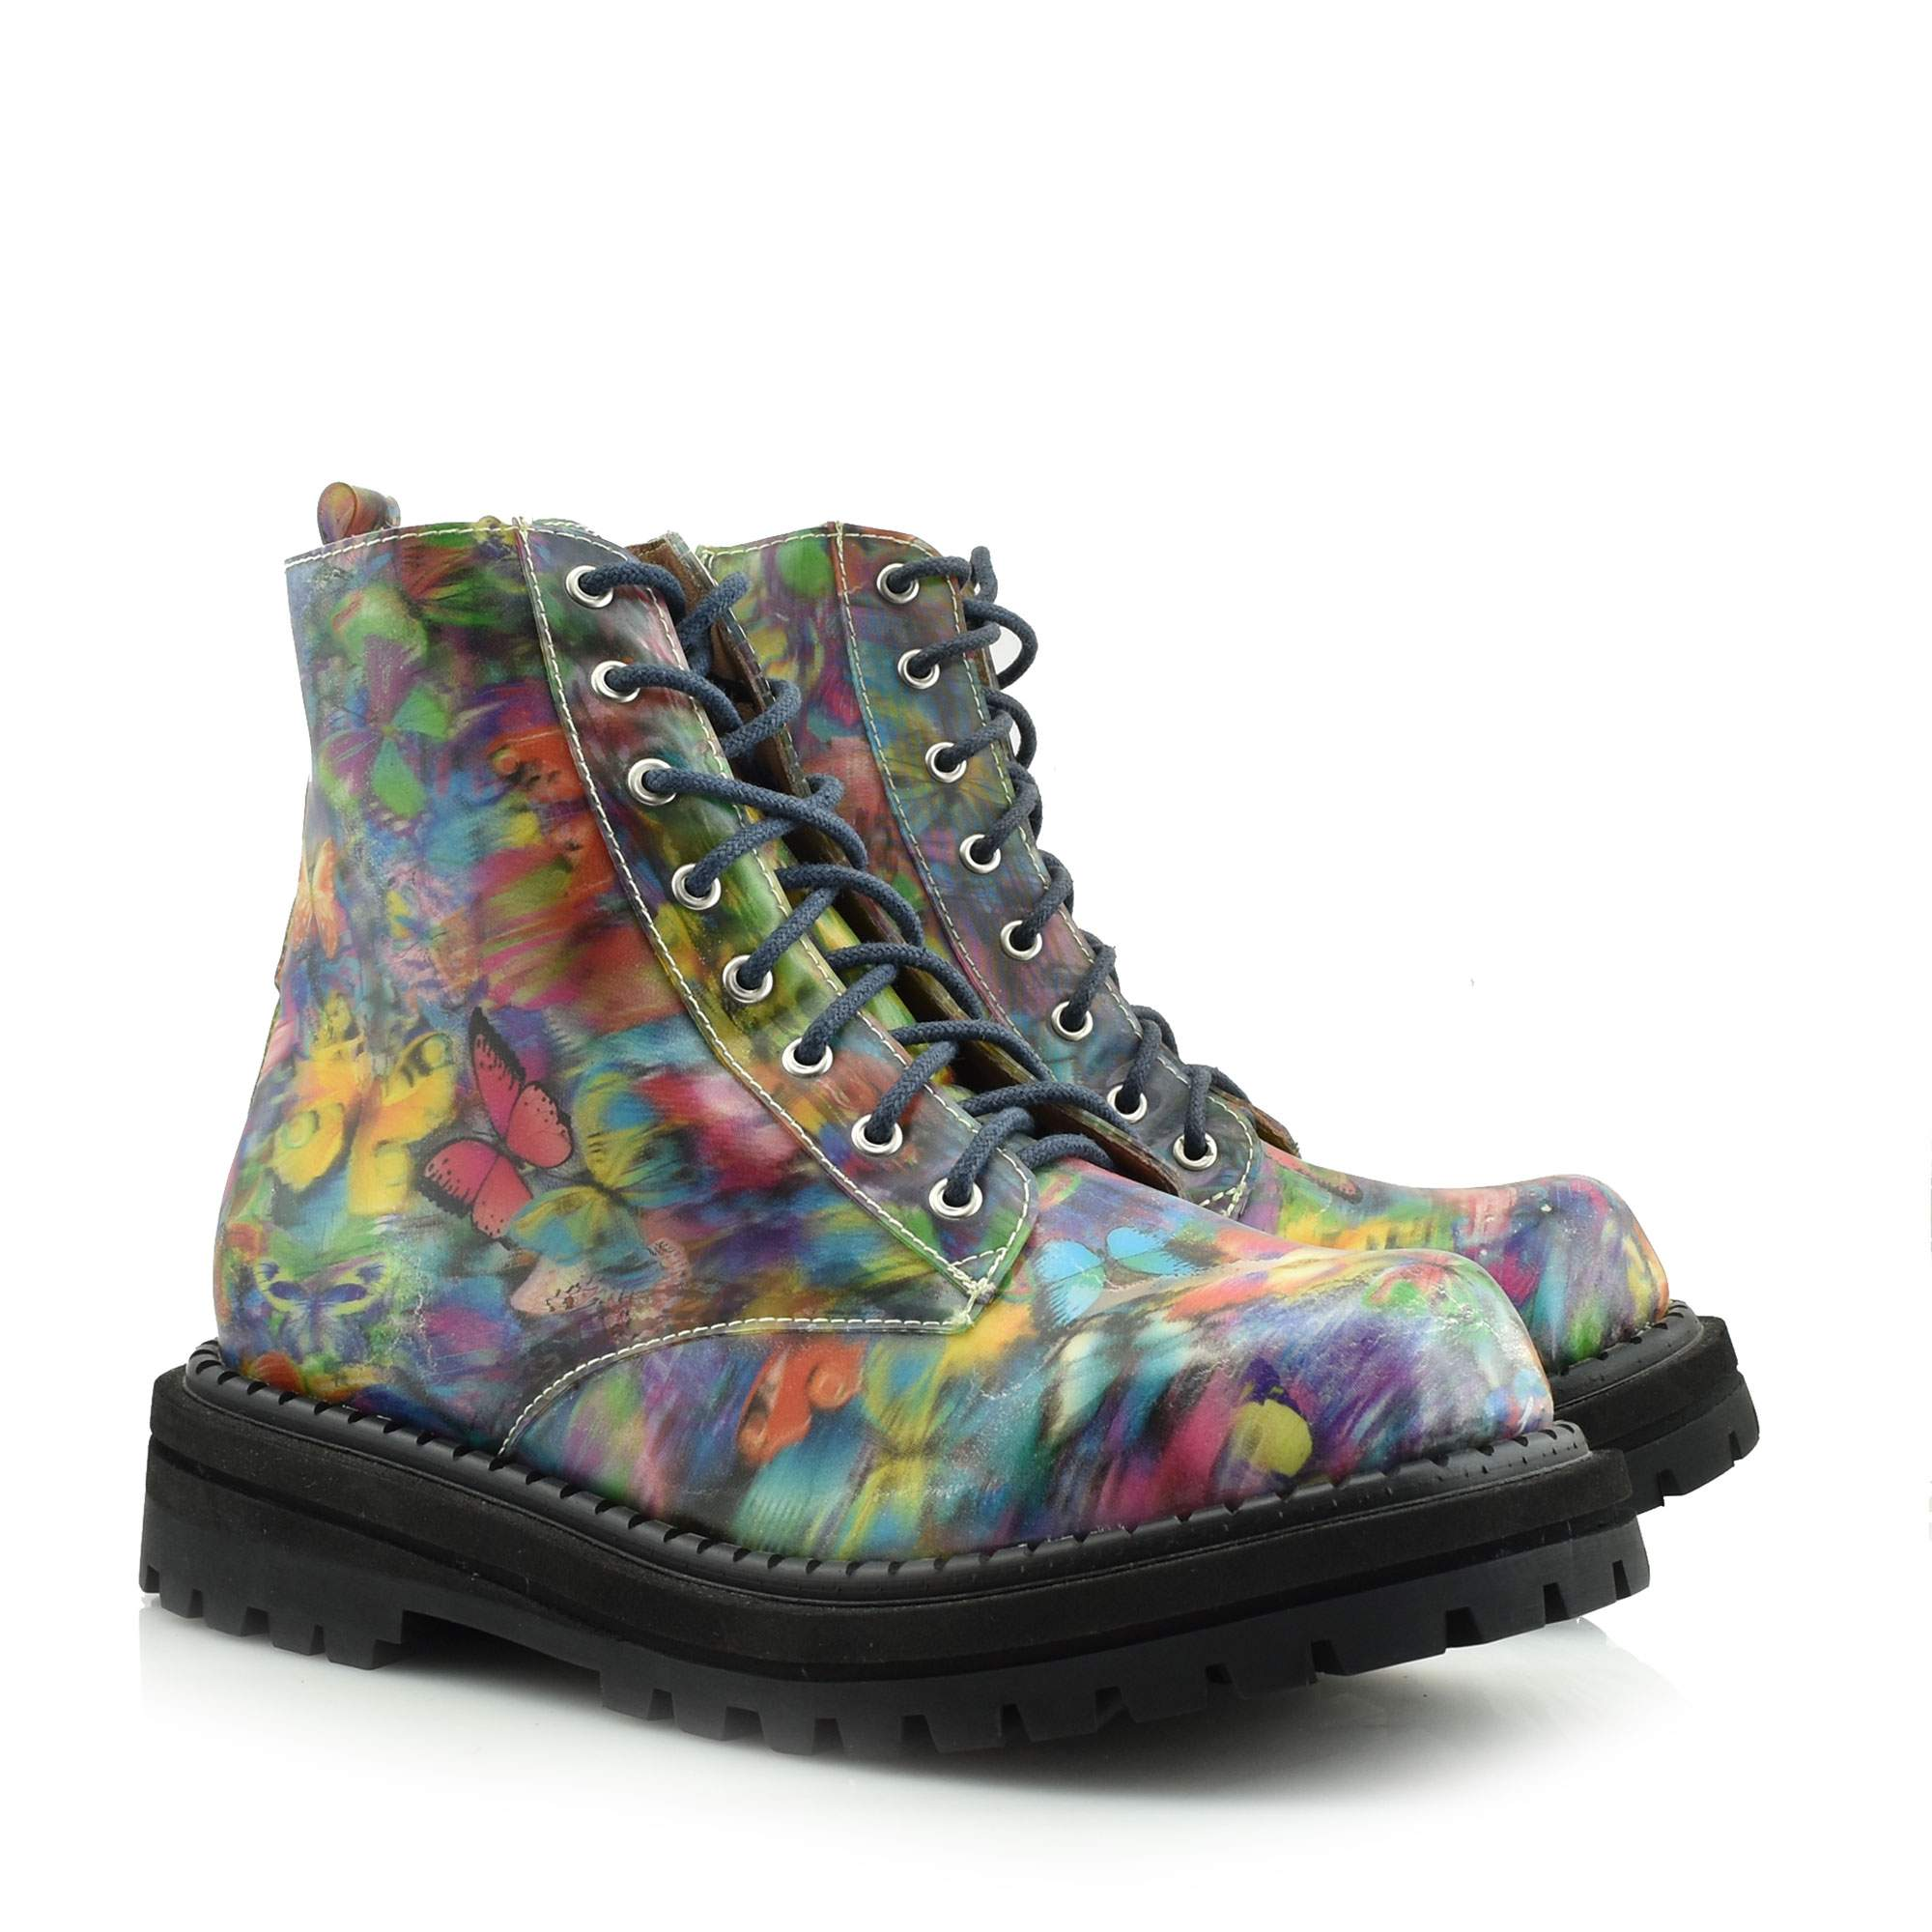 JEFFREY CAMPBELL MULTI BLUE - GROHL